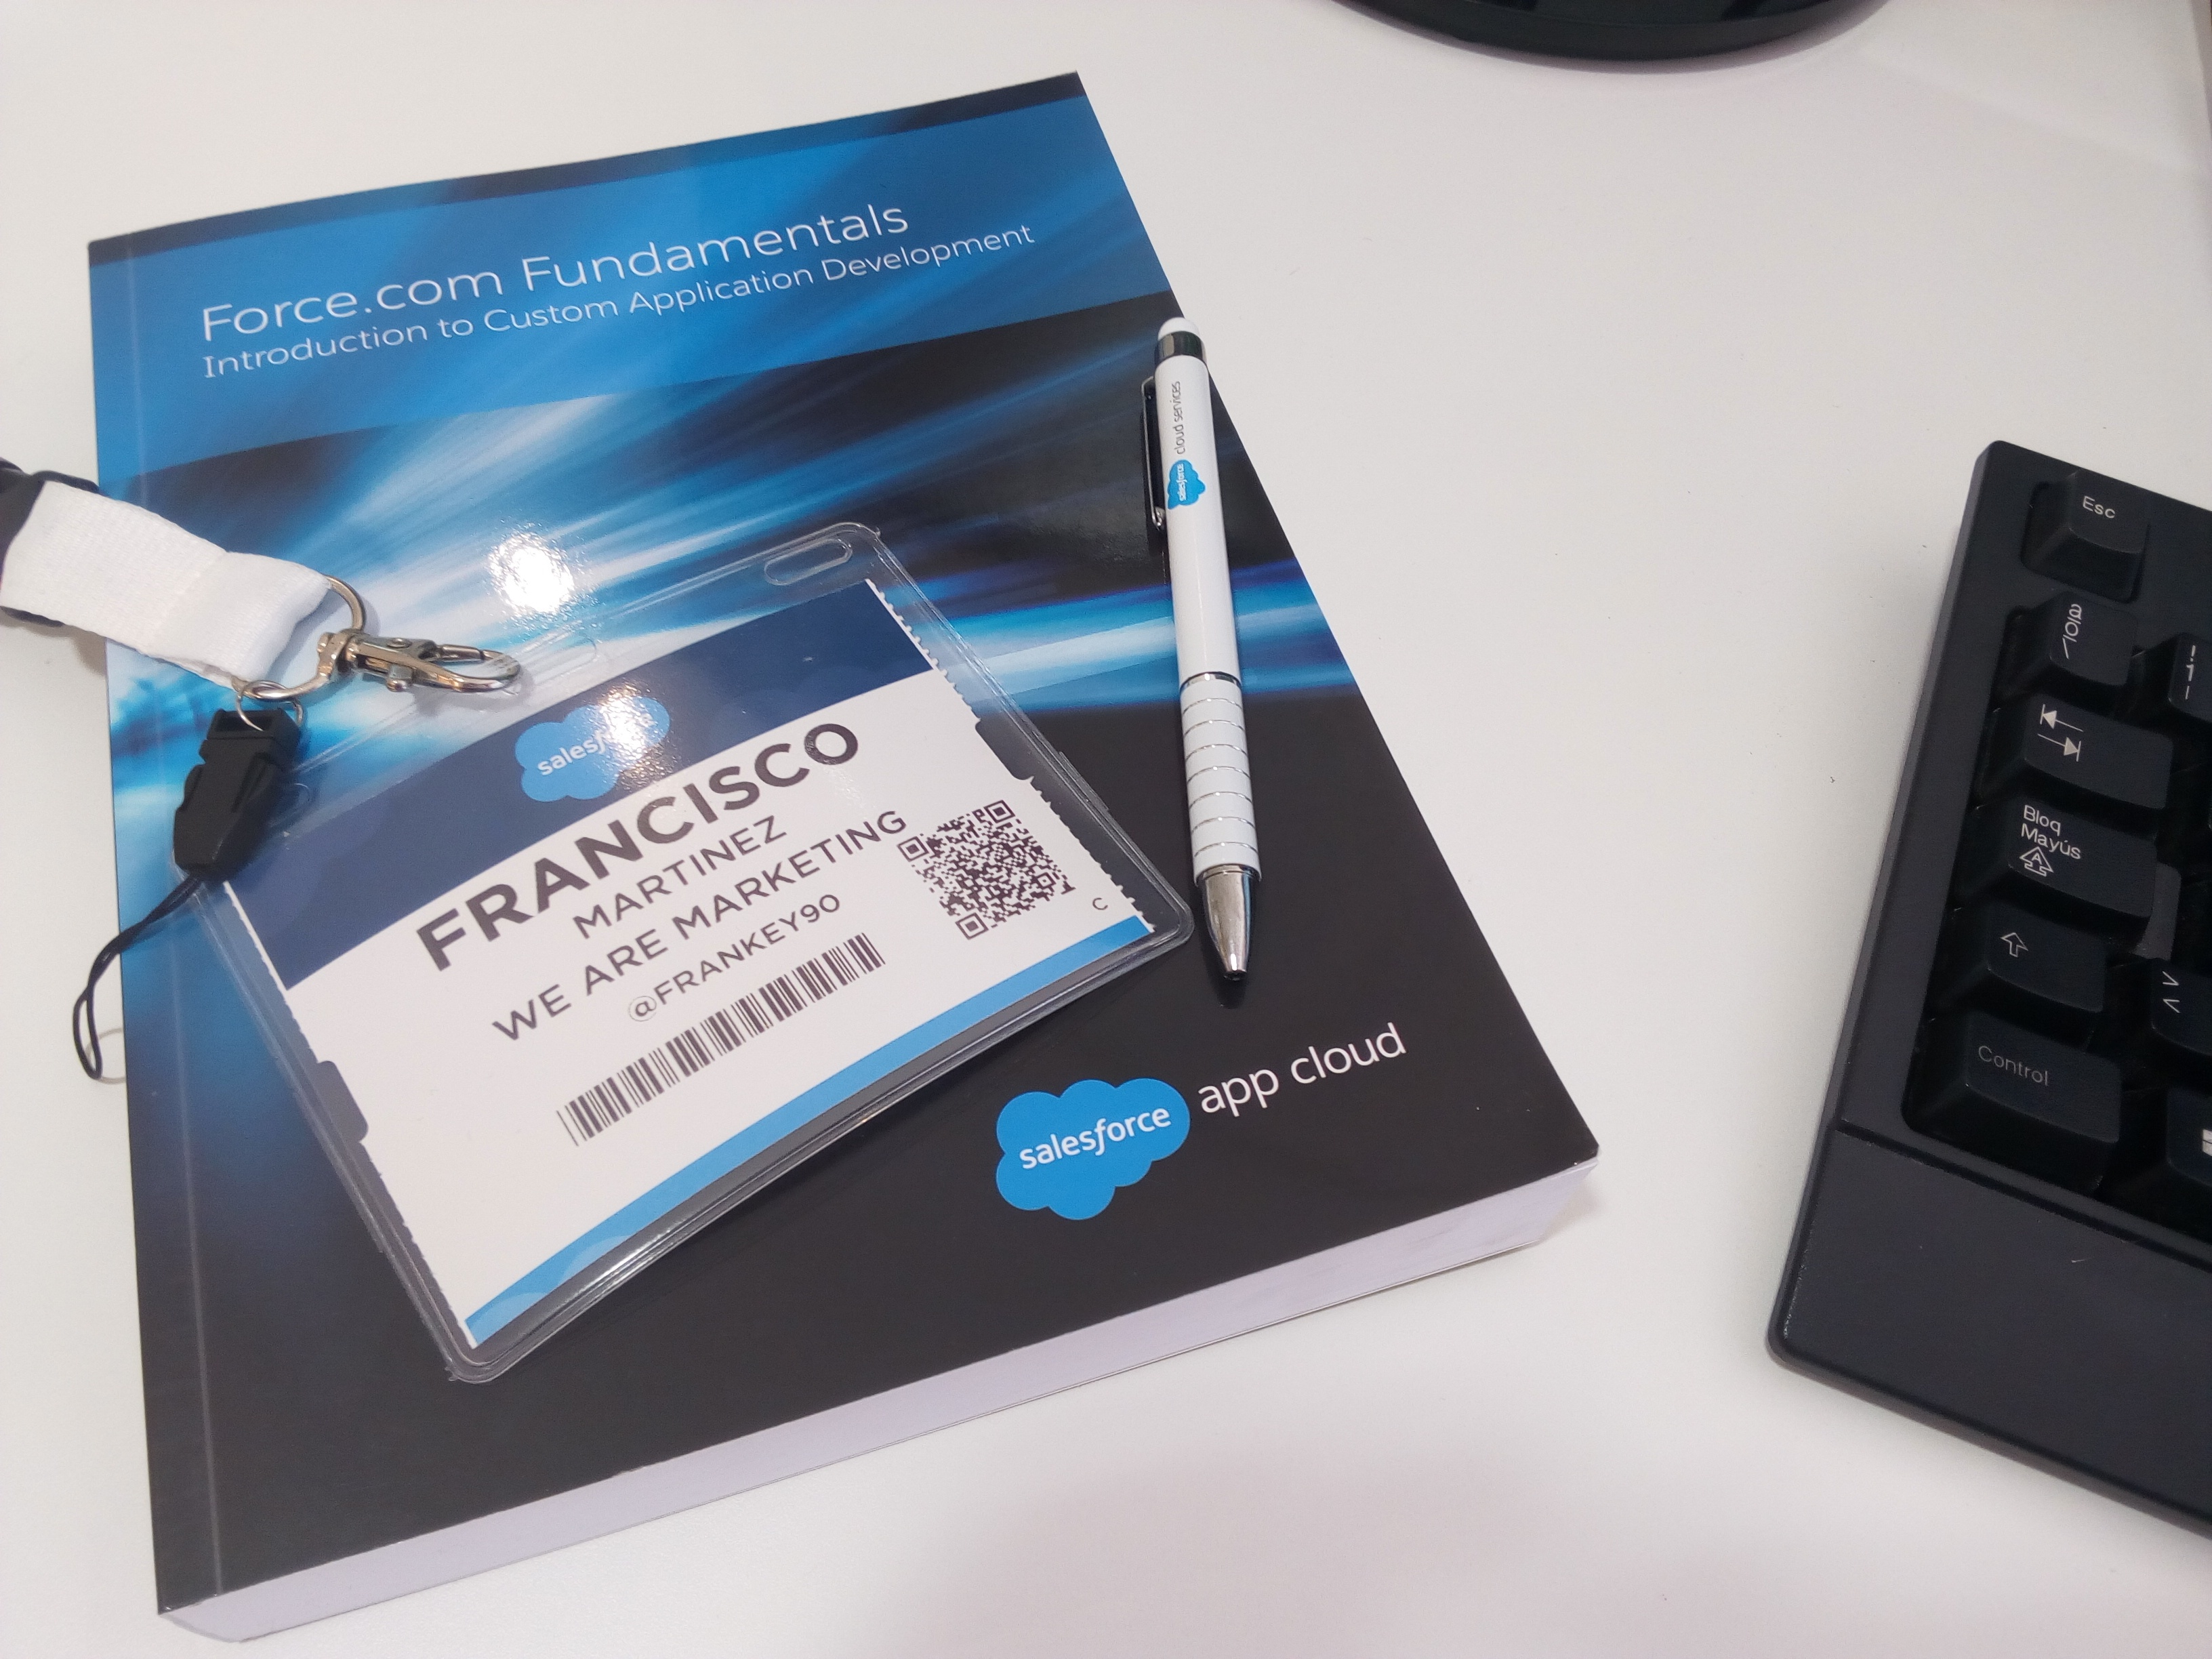 salesforce_book_acreditacion.jpg